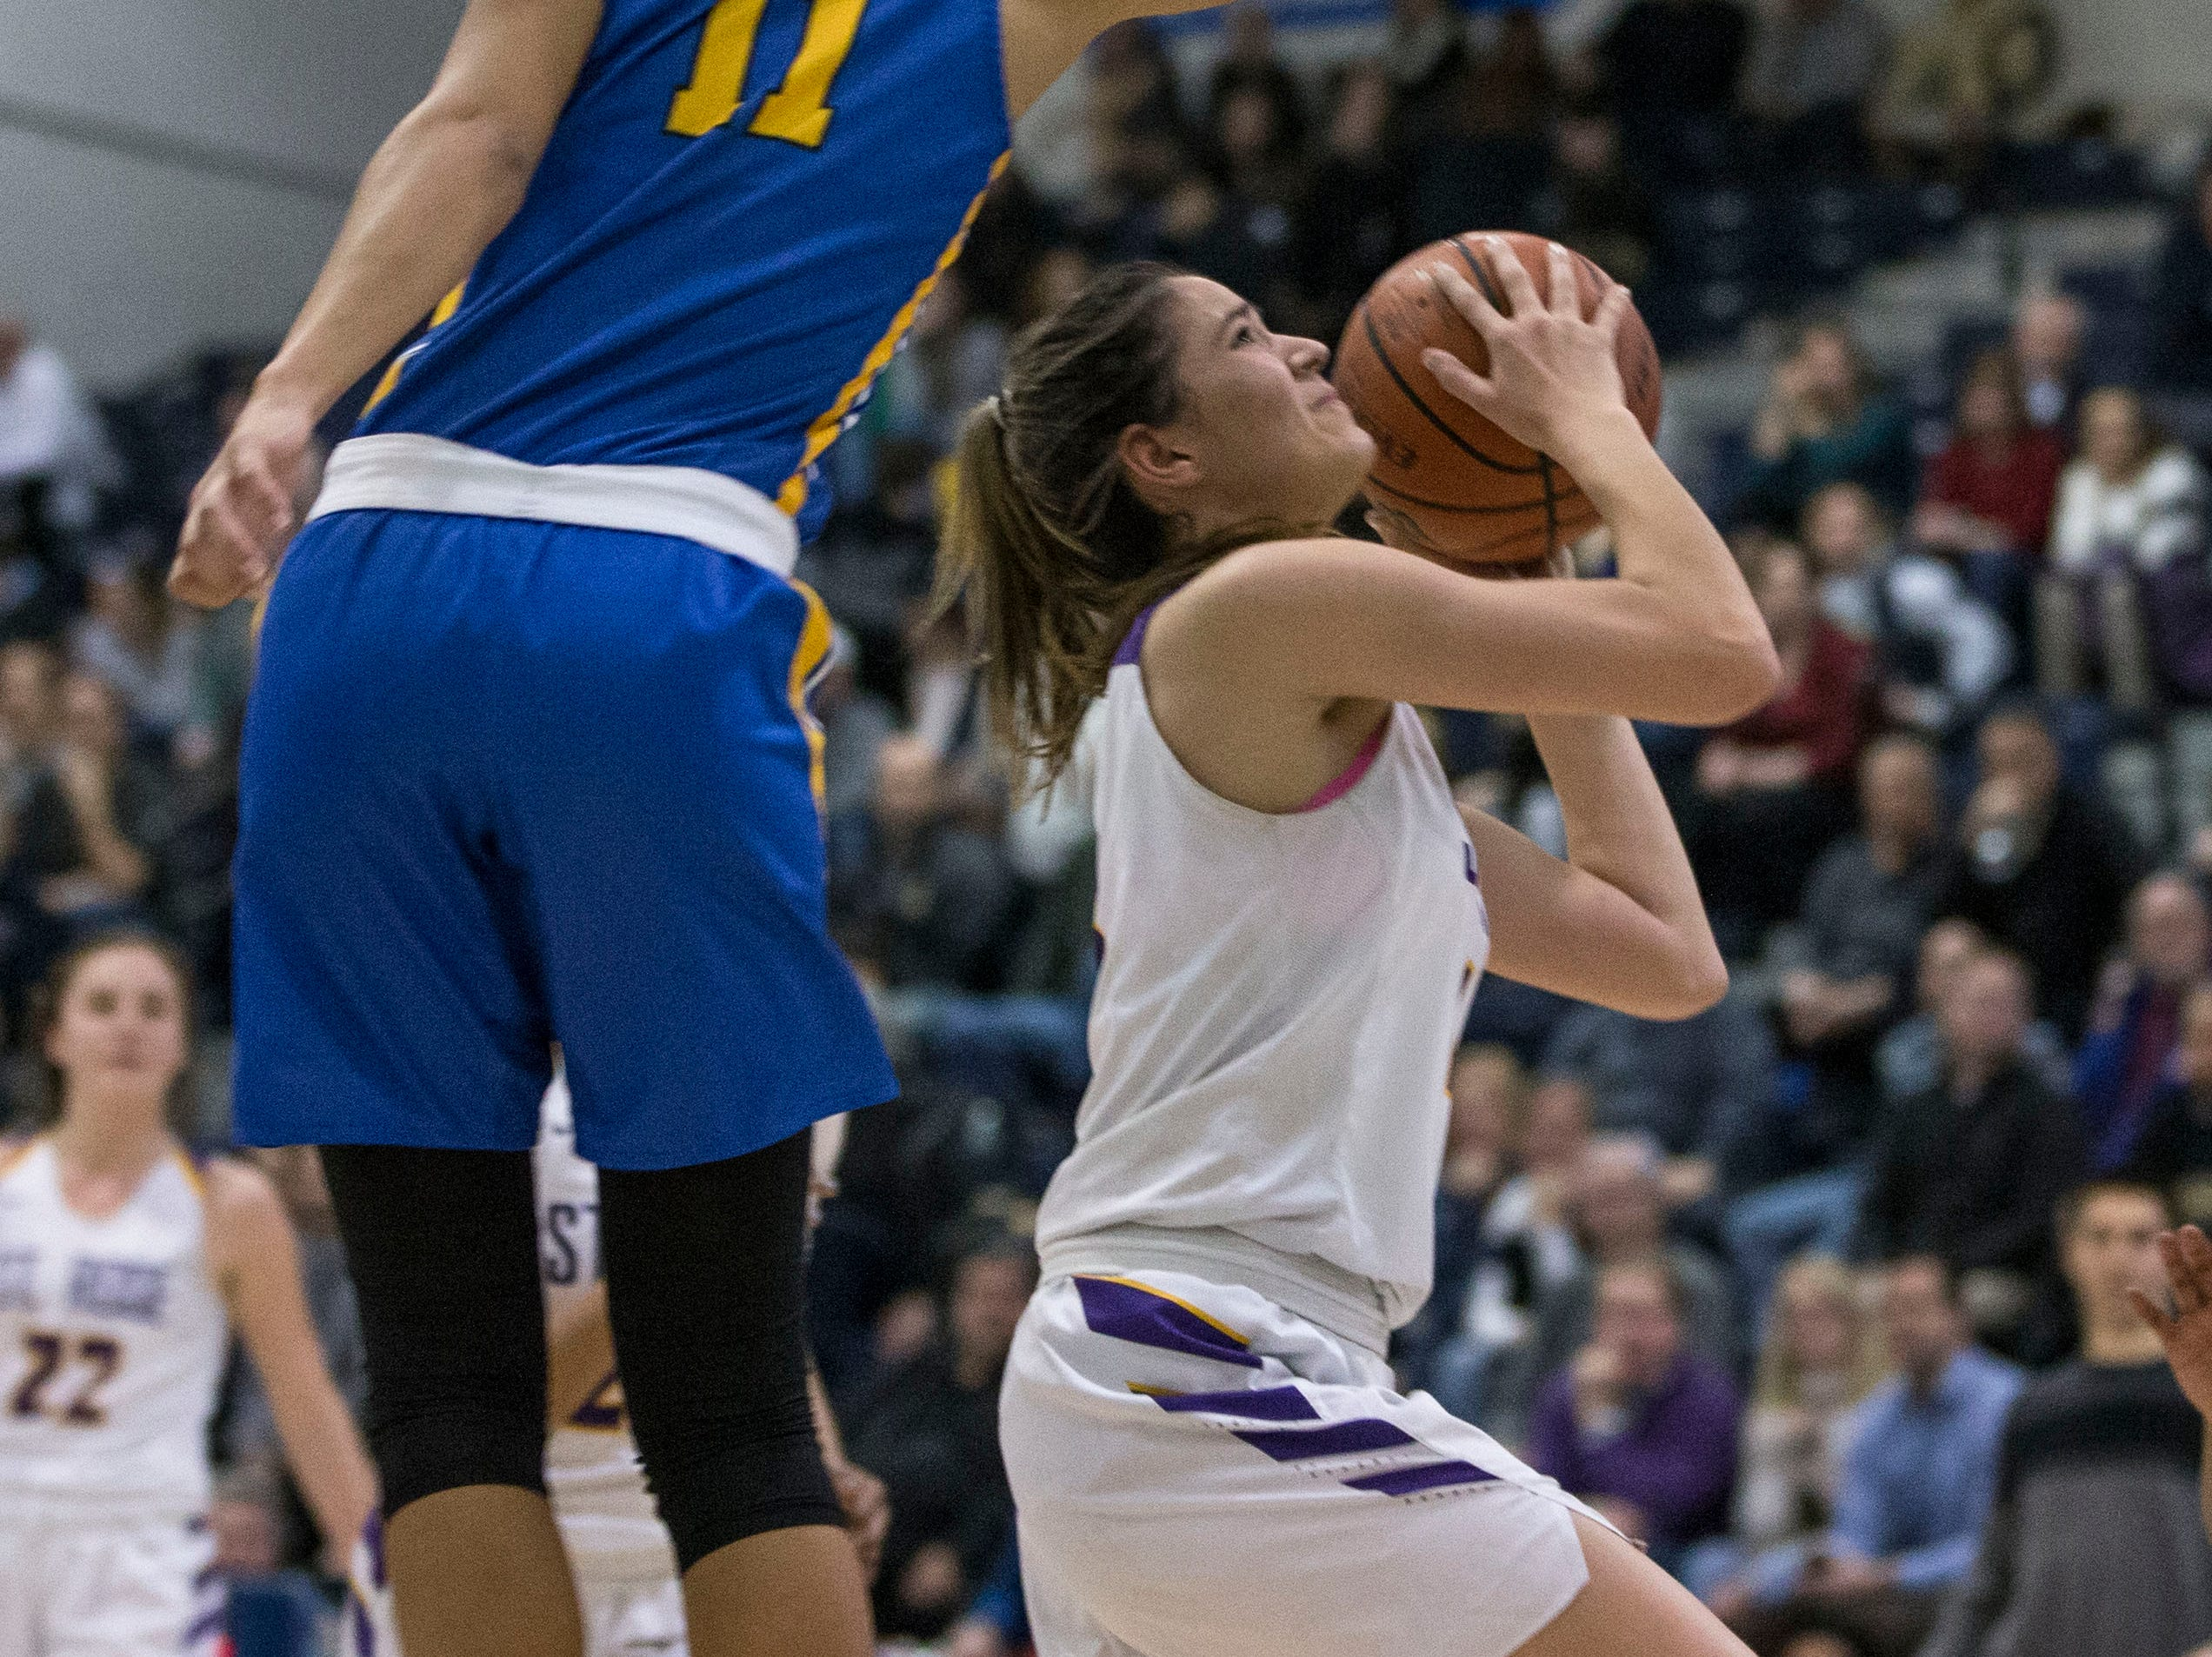 Shore Conference Tournament semifinals featuring St. Rose vs Manchester. St. Rose's Sam Mikos shoots as Manchester's Leilani Correa defends.Toms River, NJTuesday, February 19, 2019